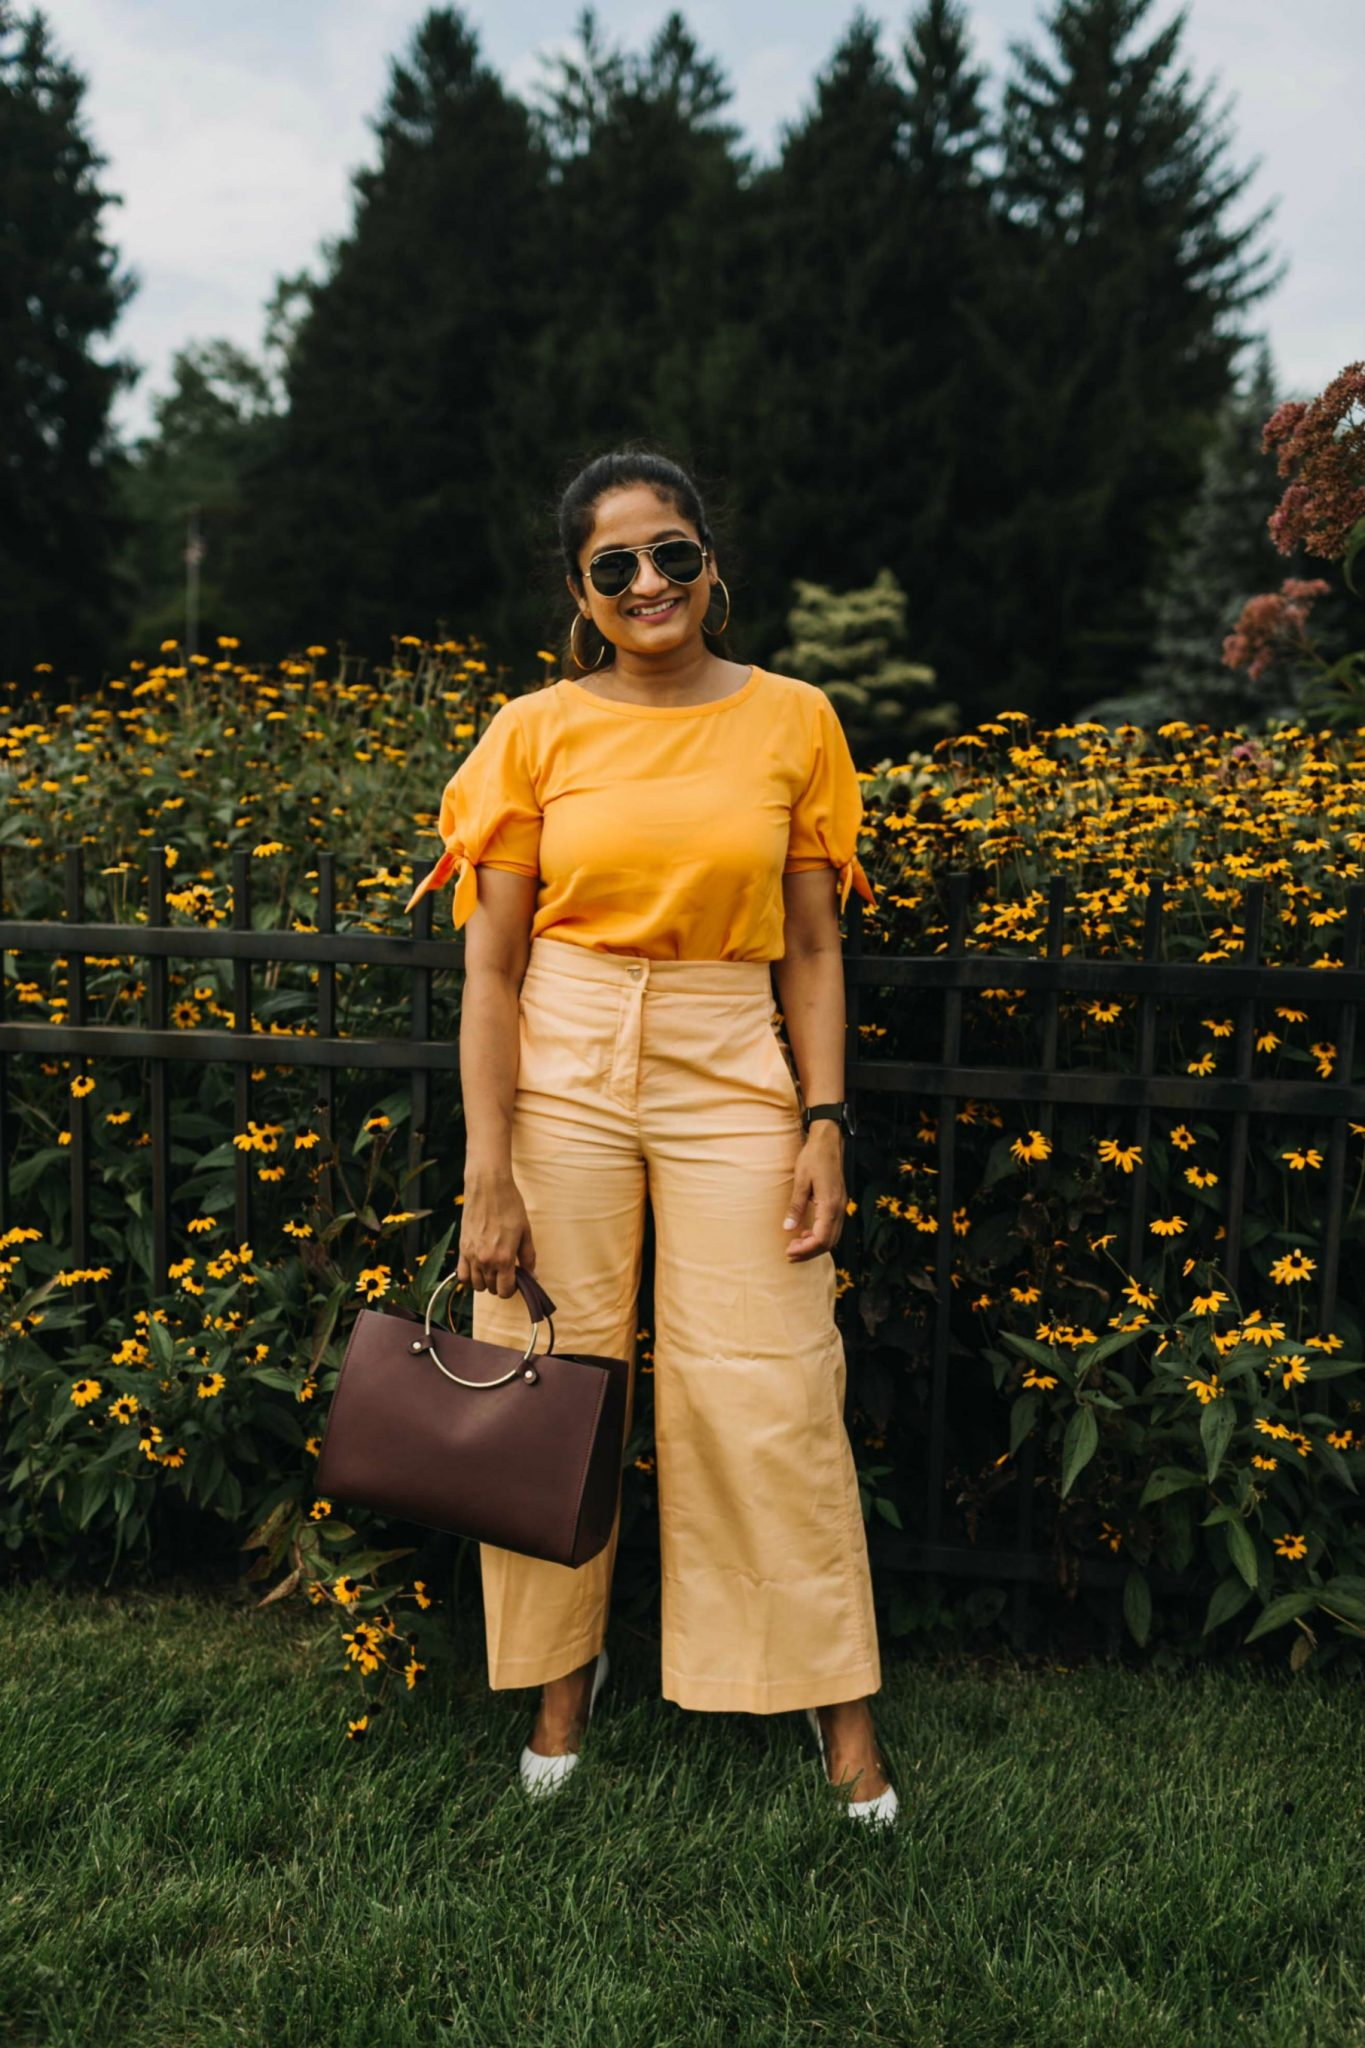 How to wear Orange trousers or pants, Ann taylor marina wide leg pant | Orange Monochrome Outfit from the Ann Taylor Sale featured by popular US modest fashion blogger, Dreaming Loud